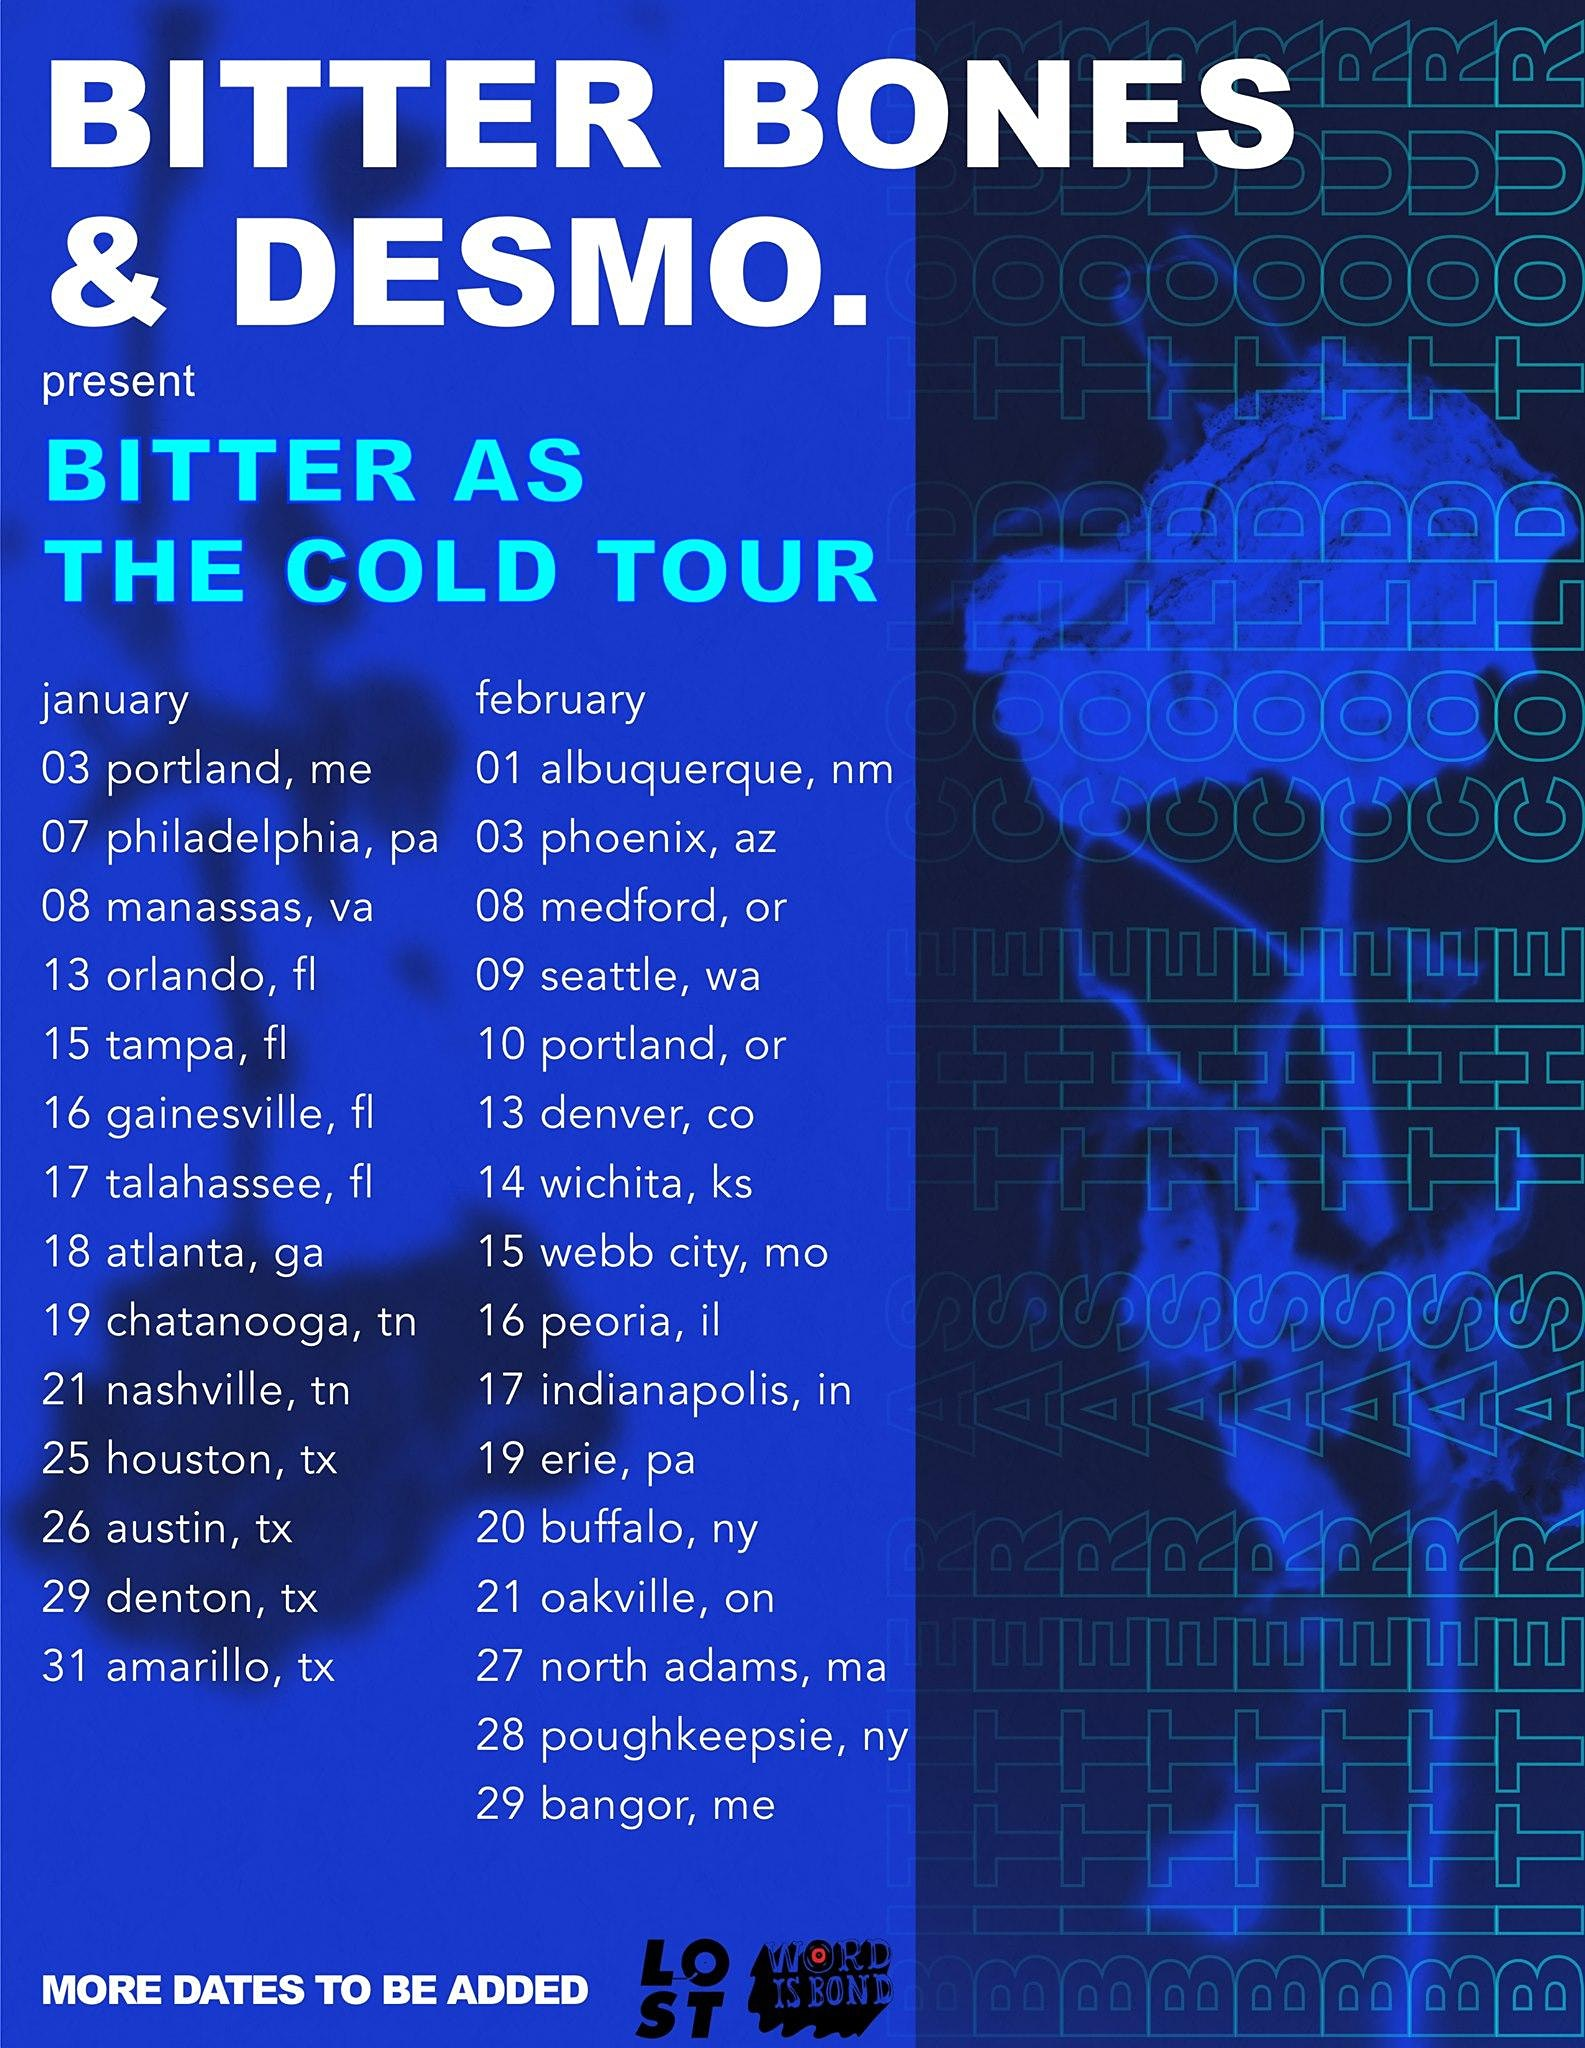 Desmo. & Bitter Bones: Bitter as the Cold Tour